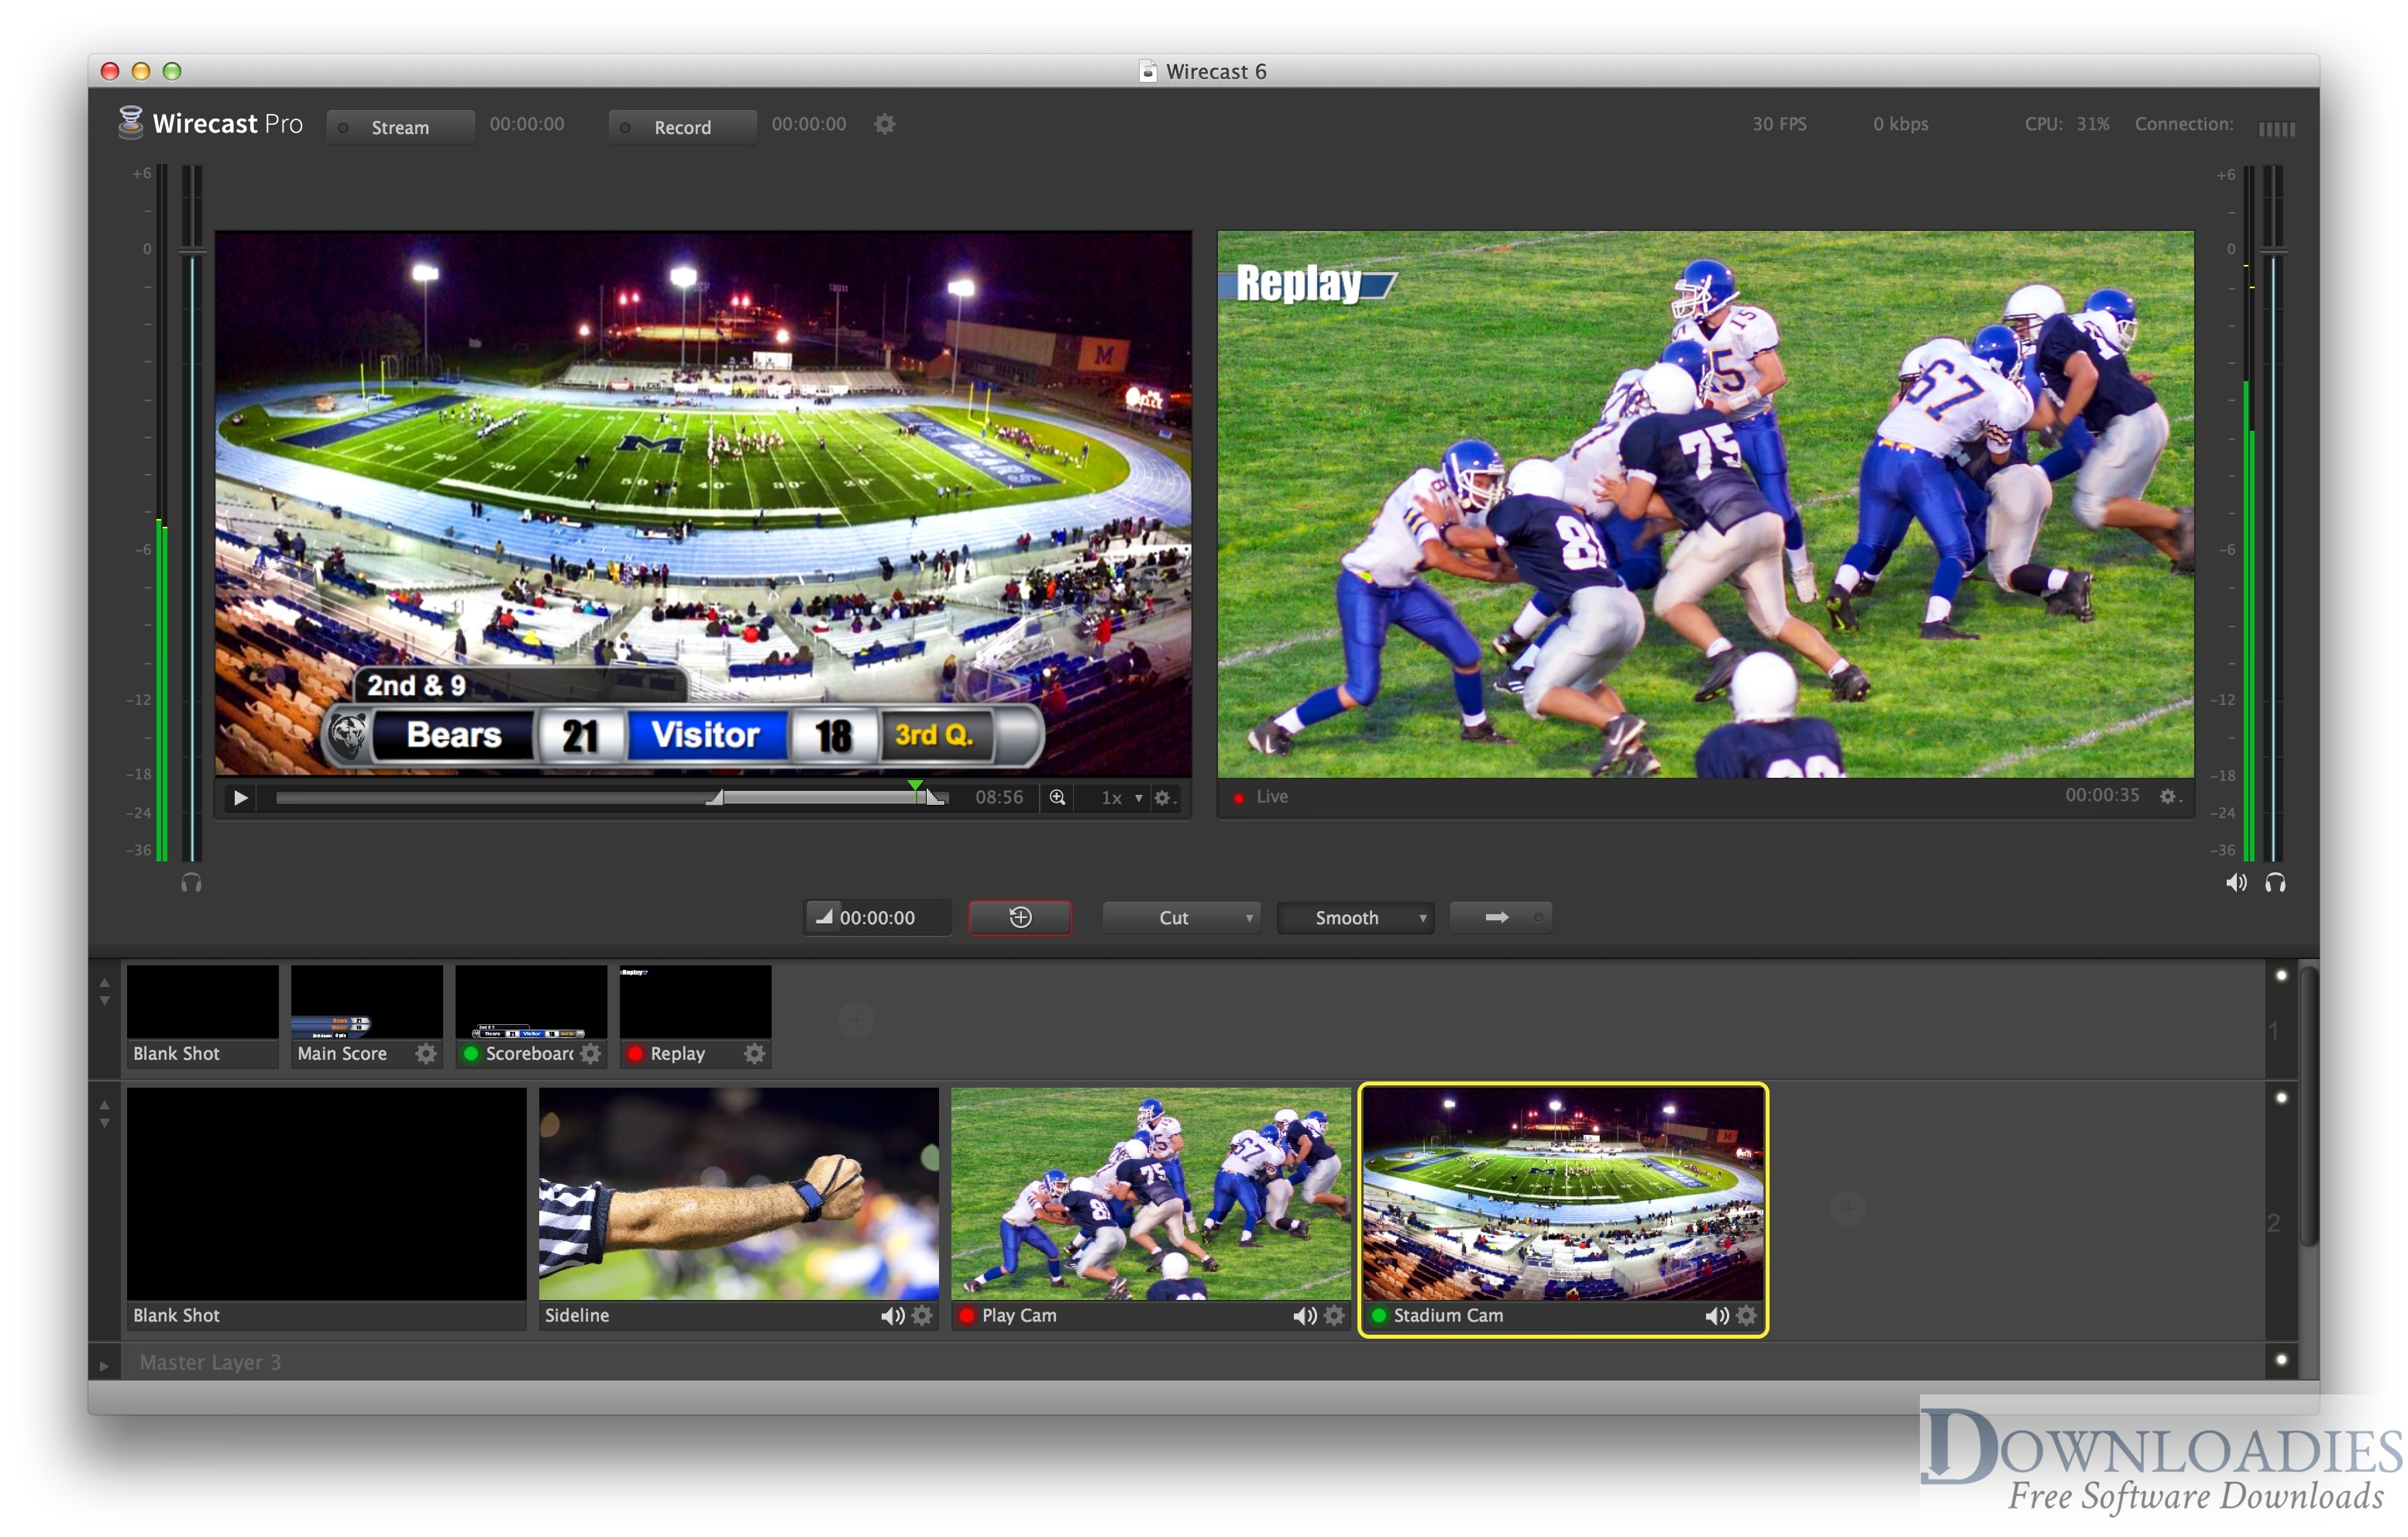 Telestream Wirecast Pro 11.1 for Mac download free